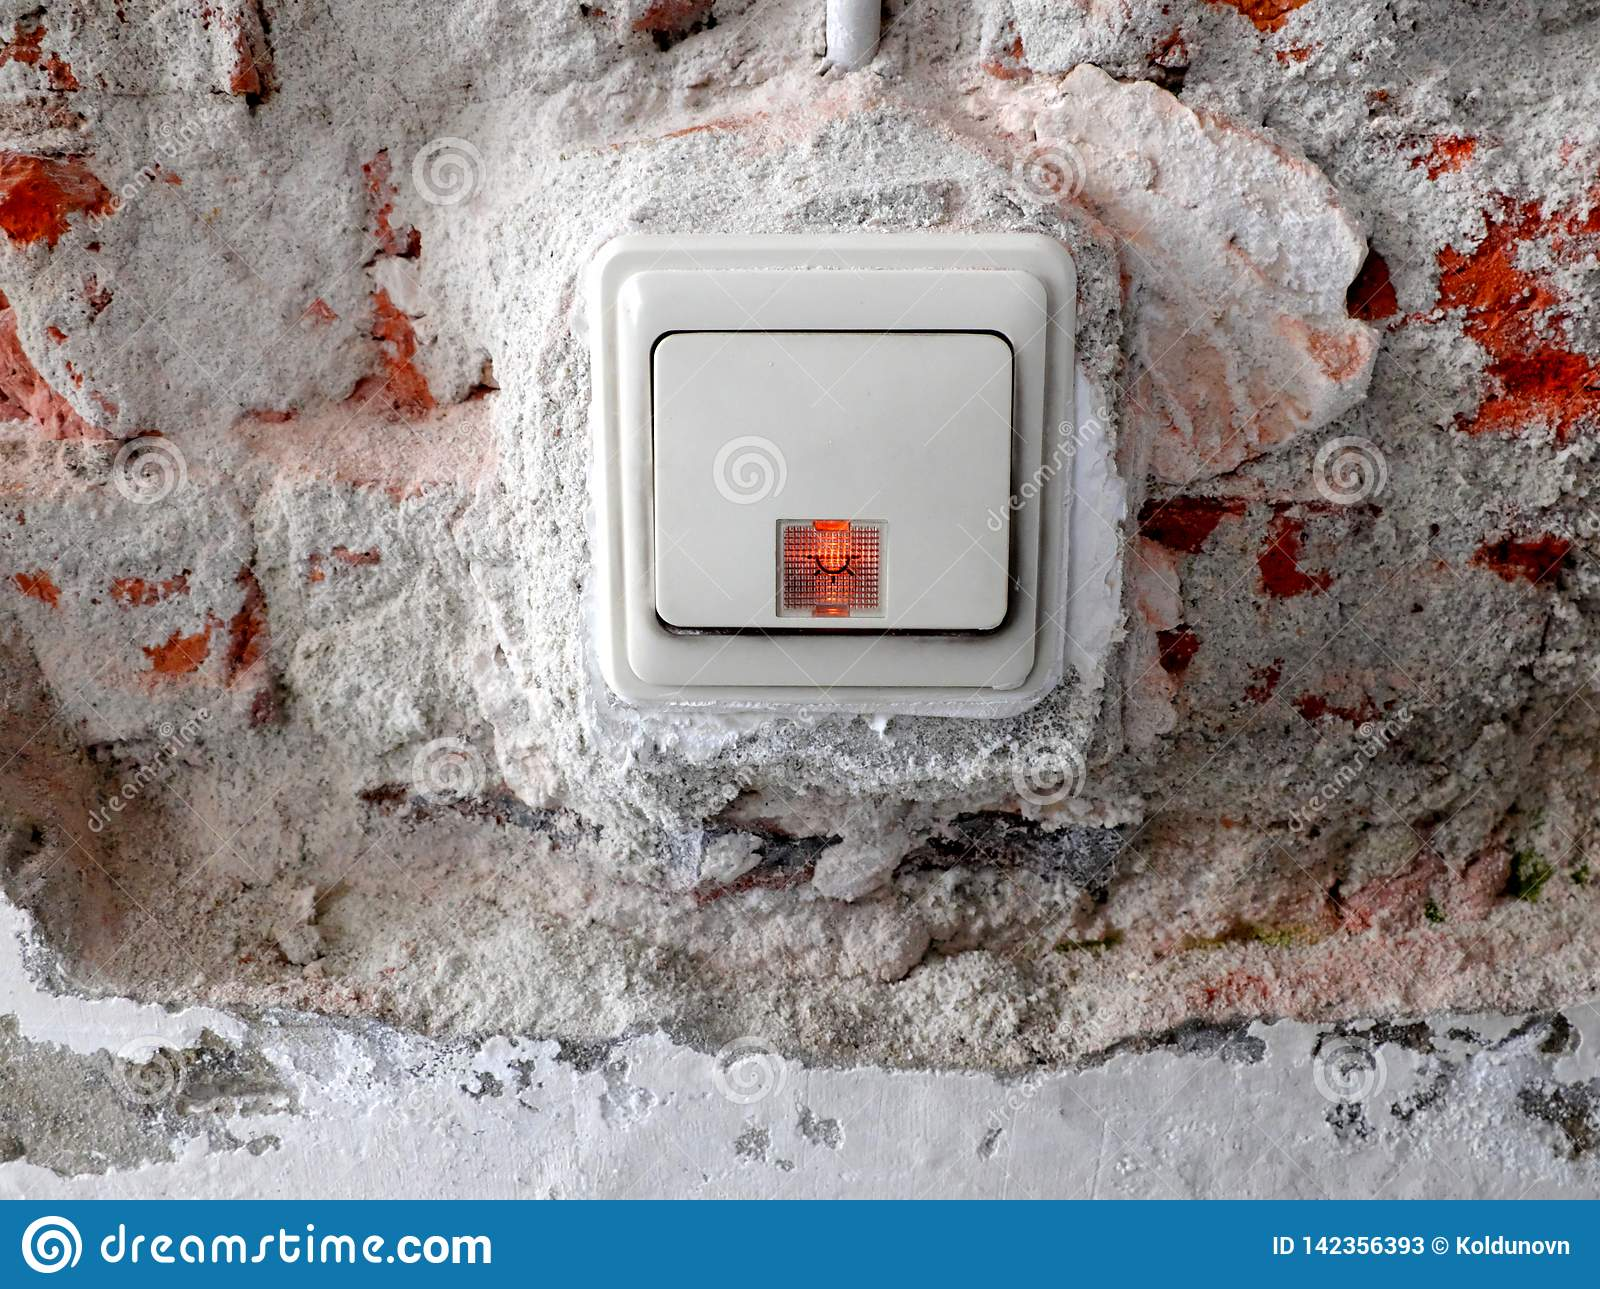 Light switch in a wall with removed plaster and visible bricks